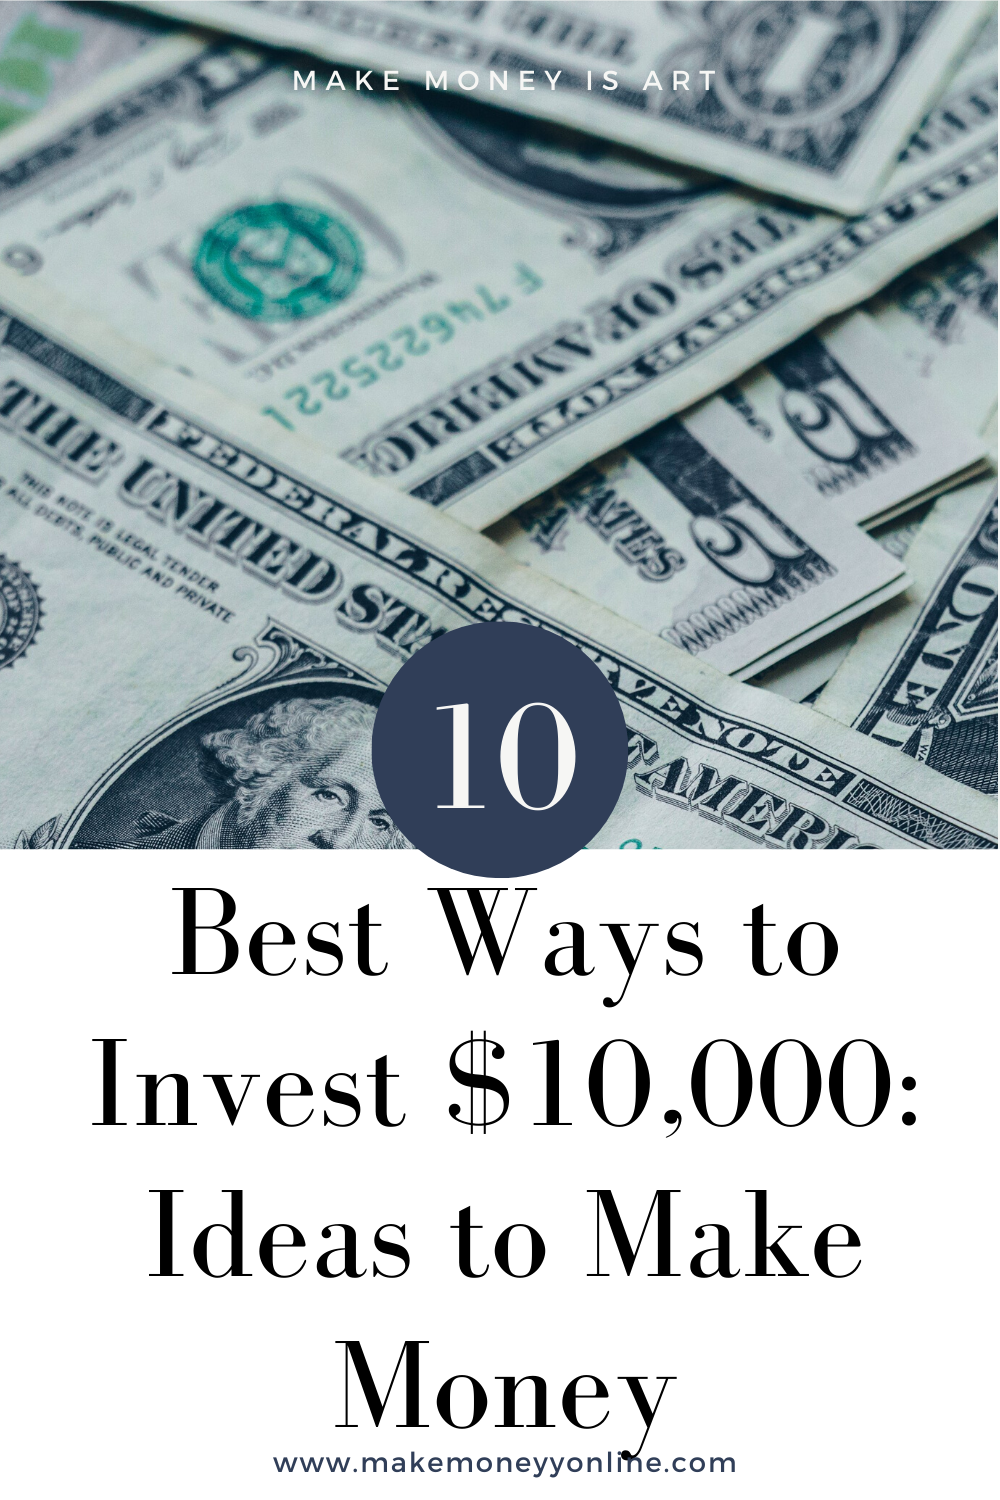 How To Invest 15 000 And Make Money